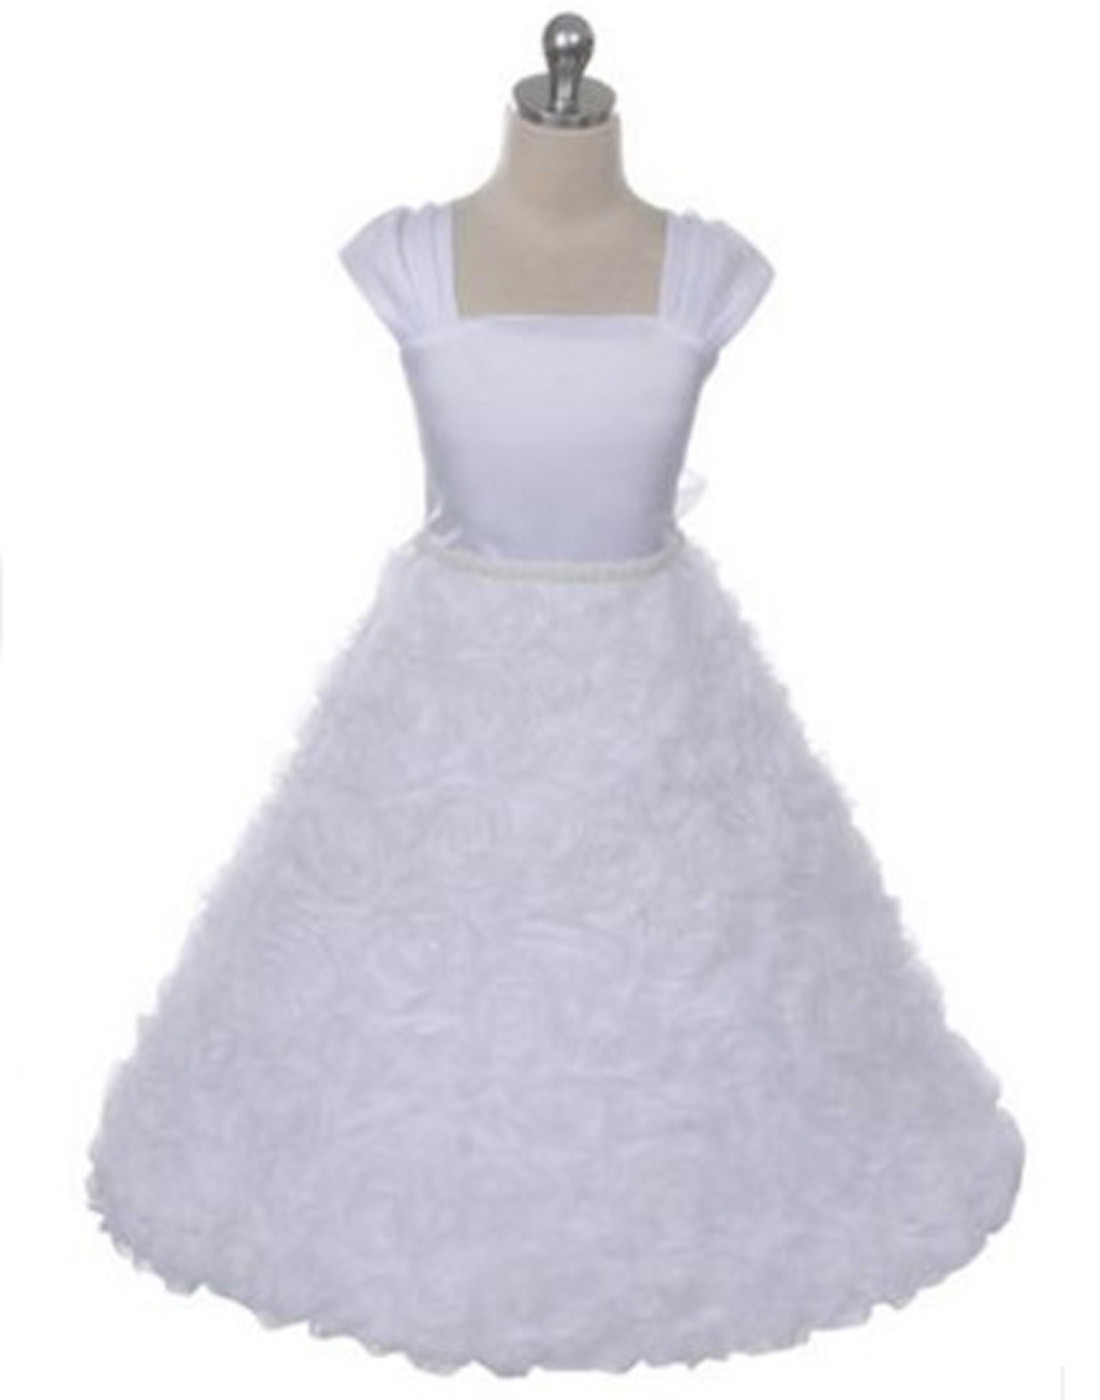 6f26d0106 Efavormart Satin Bodice and Ruffled Rosette Skirt with beaded Belt Birthday  Girl Dress Junior Flower Girl Wedding Party Girls Dress